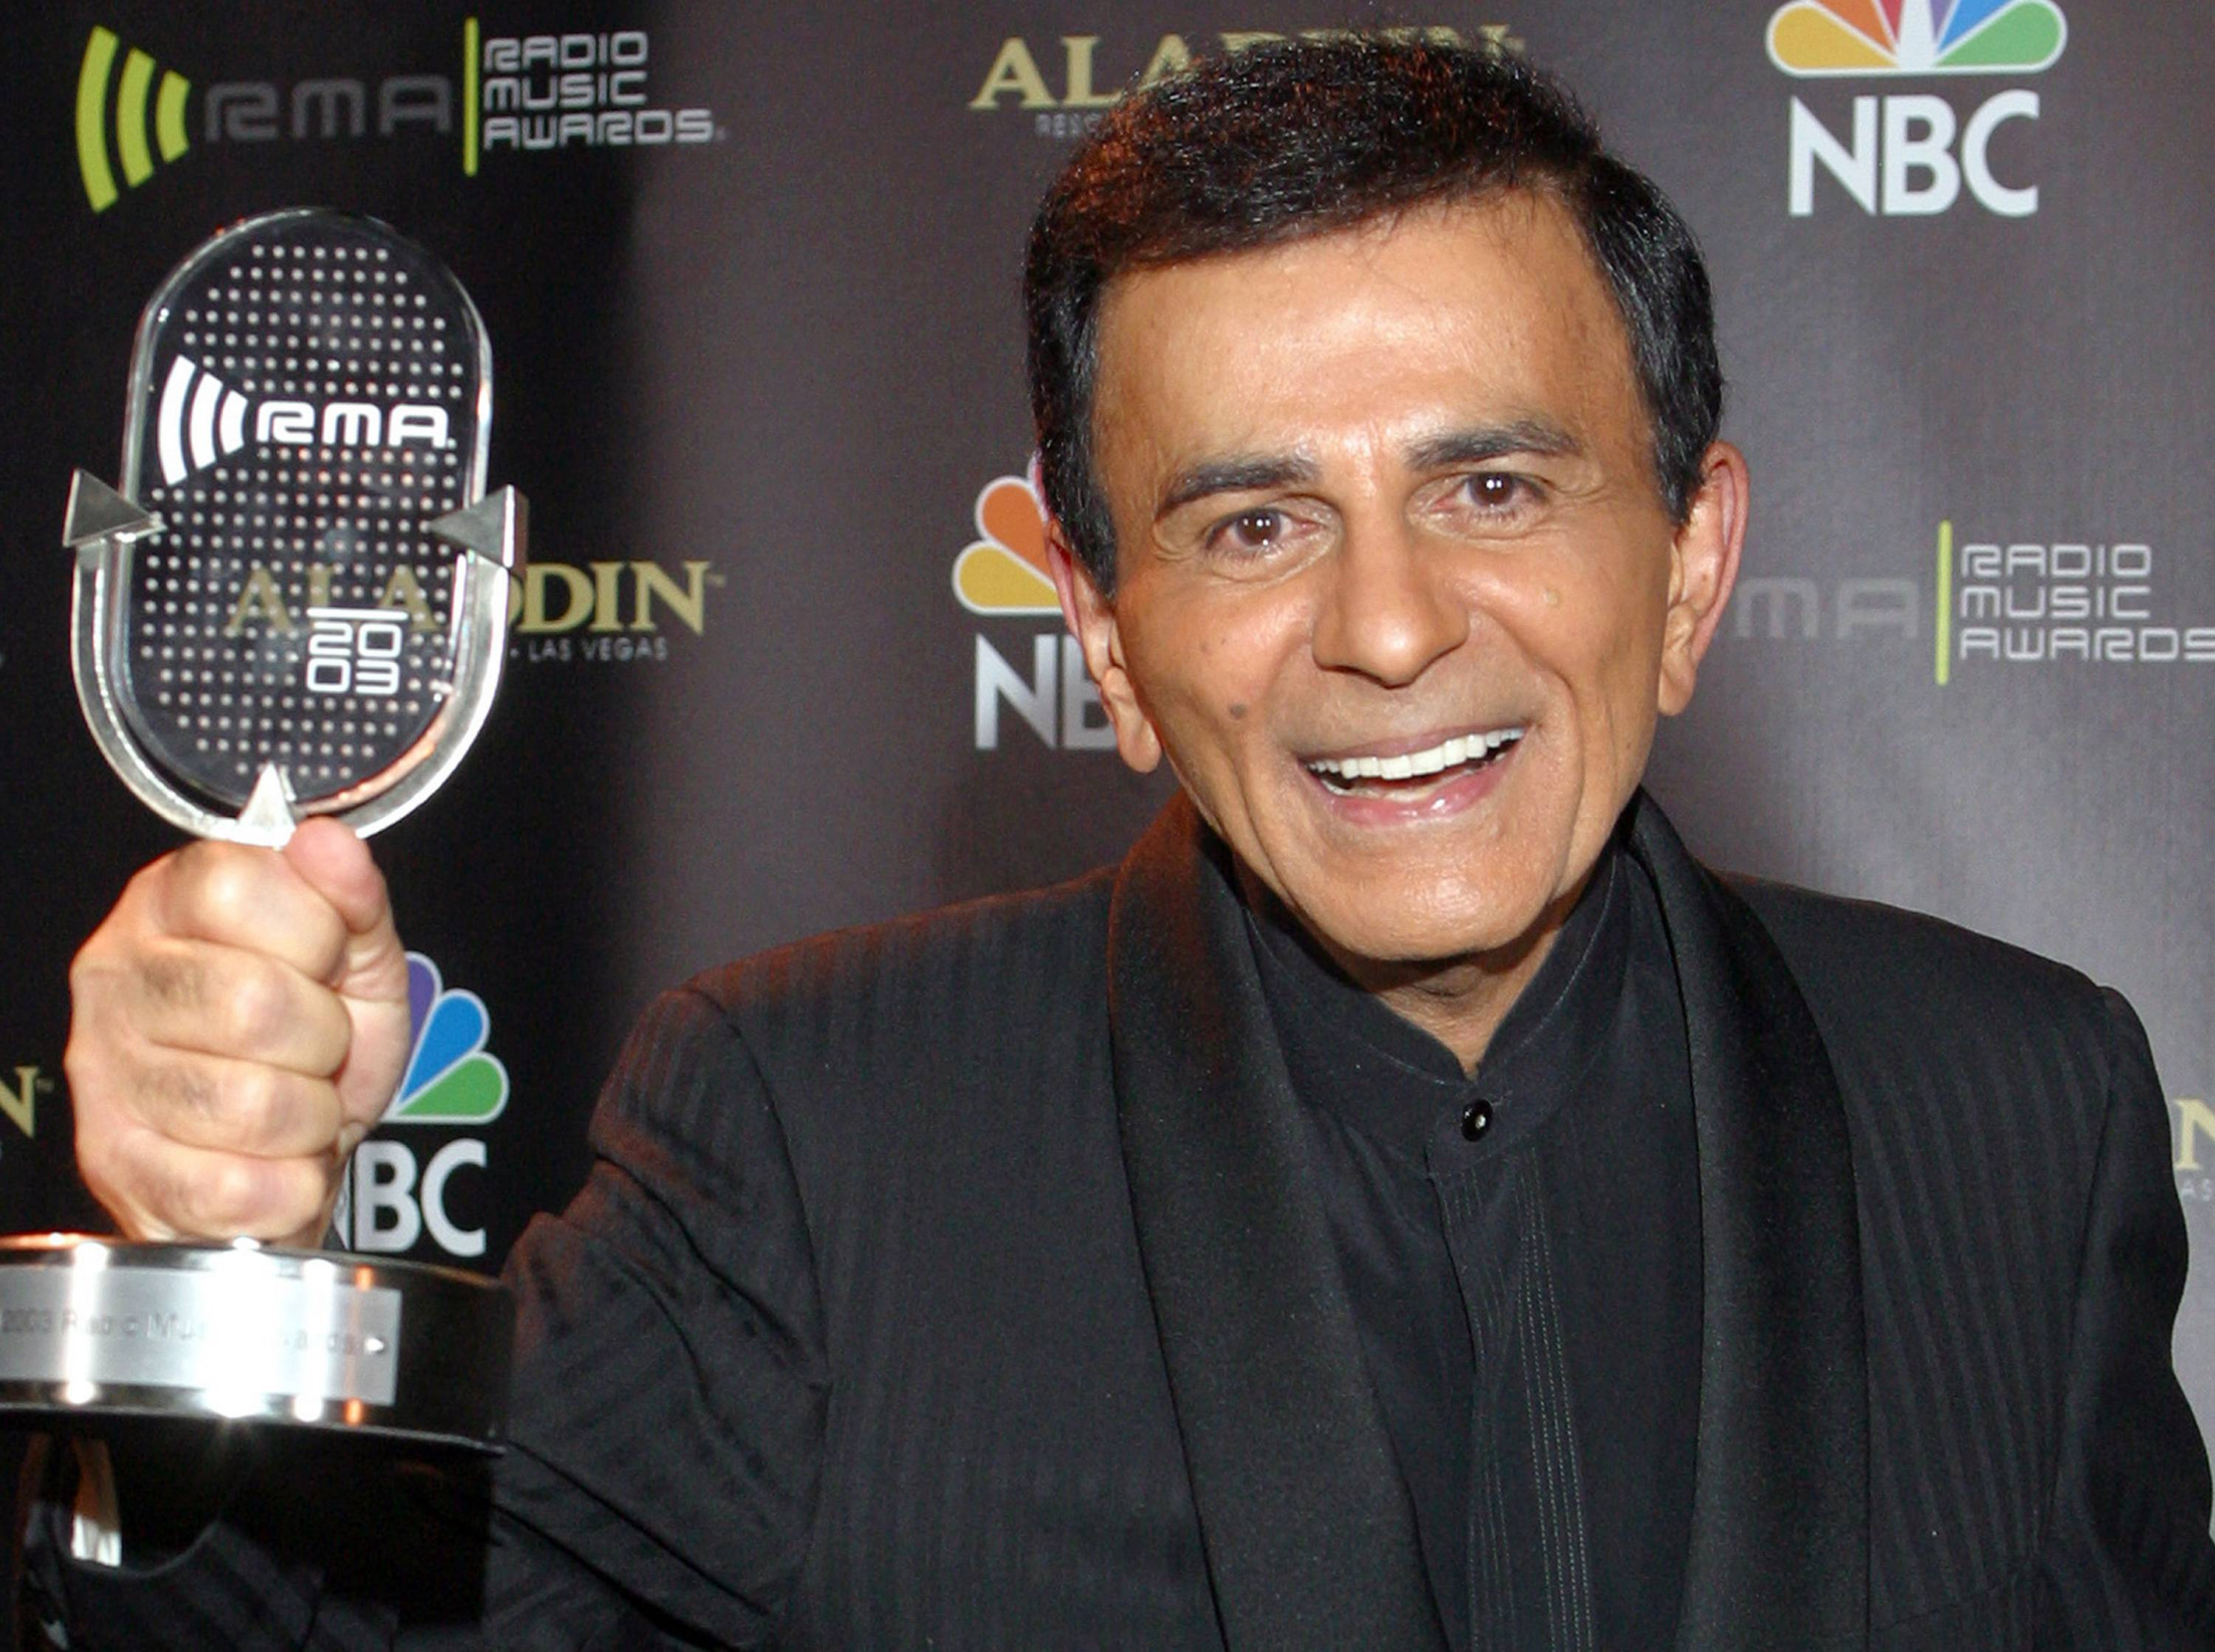 A spokesman for Casey Kasem's daughter says the ailing radio personality has been taken by ambulance to a hospital or medical facility in Washington state.